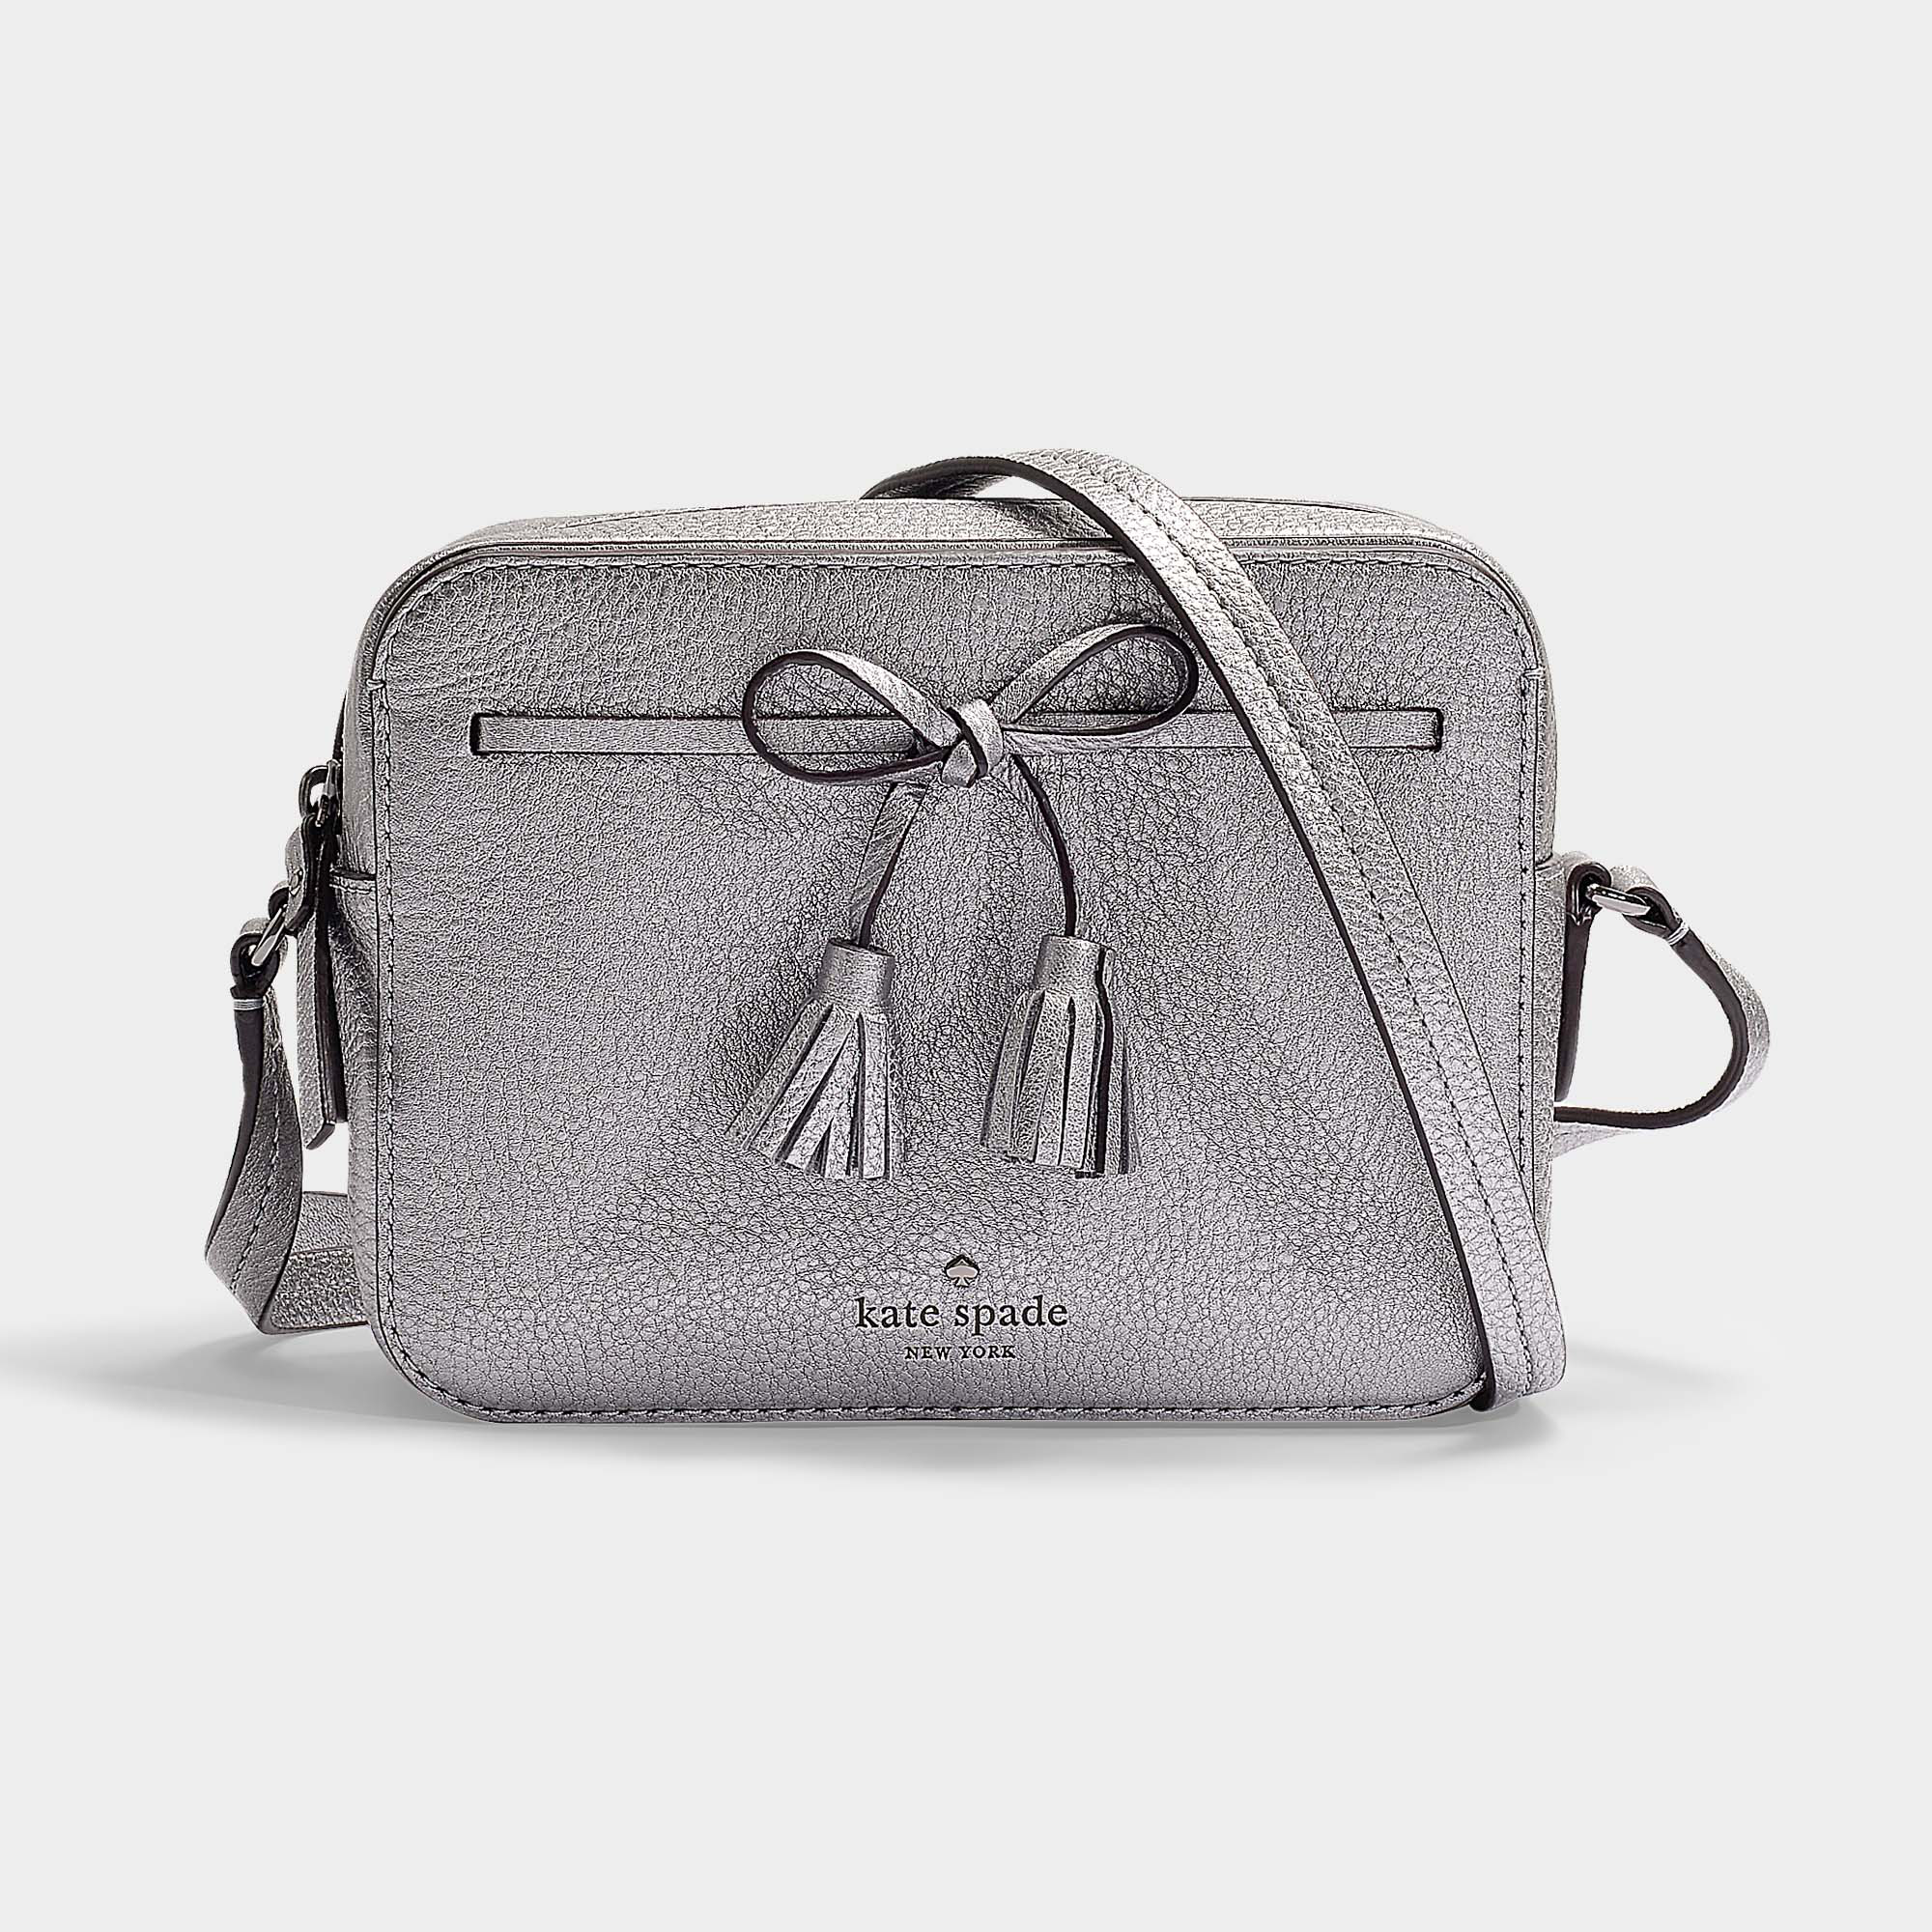 ad5559792570 Kate Spade New York | Hayes Street Arla Camera Bag In Black Pebble Leath In  Grey